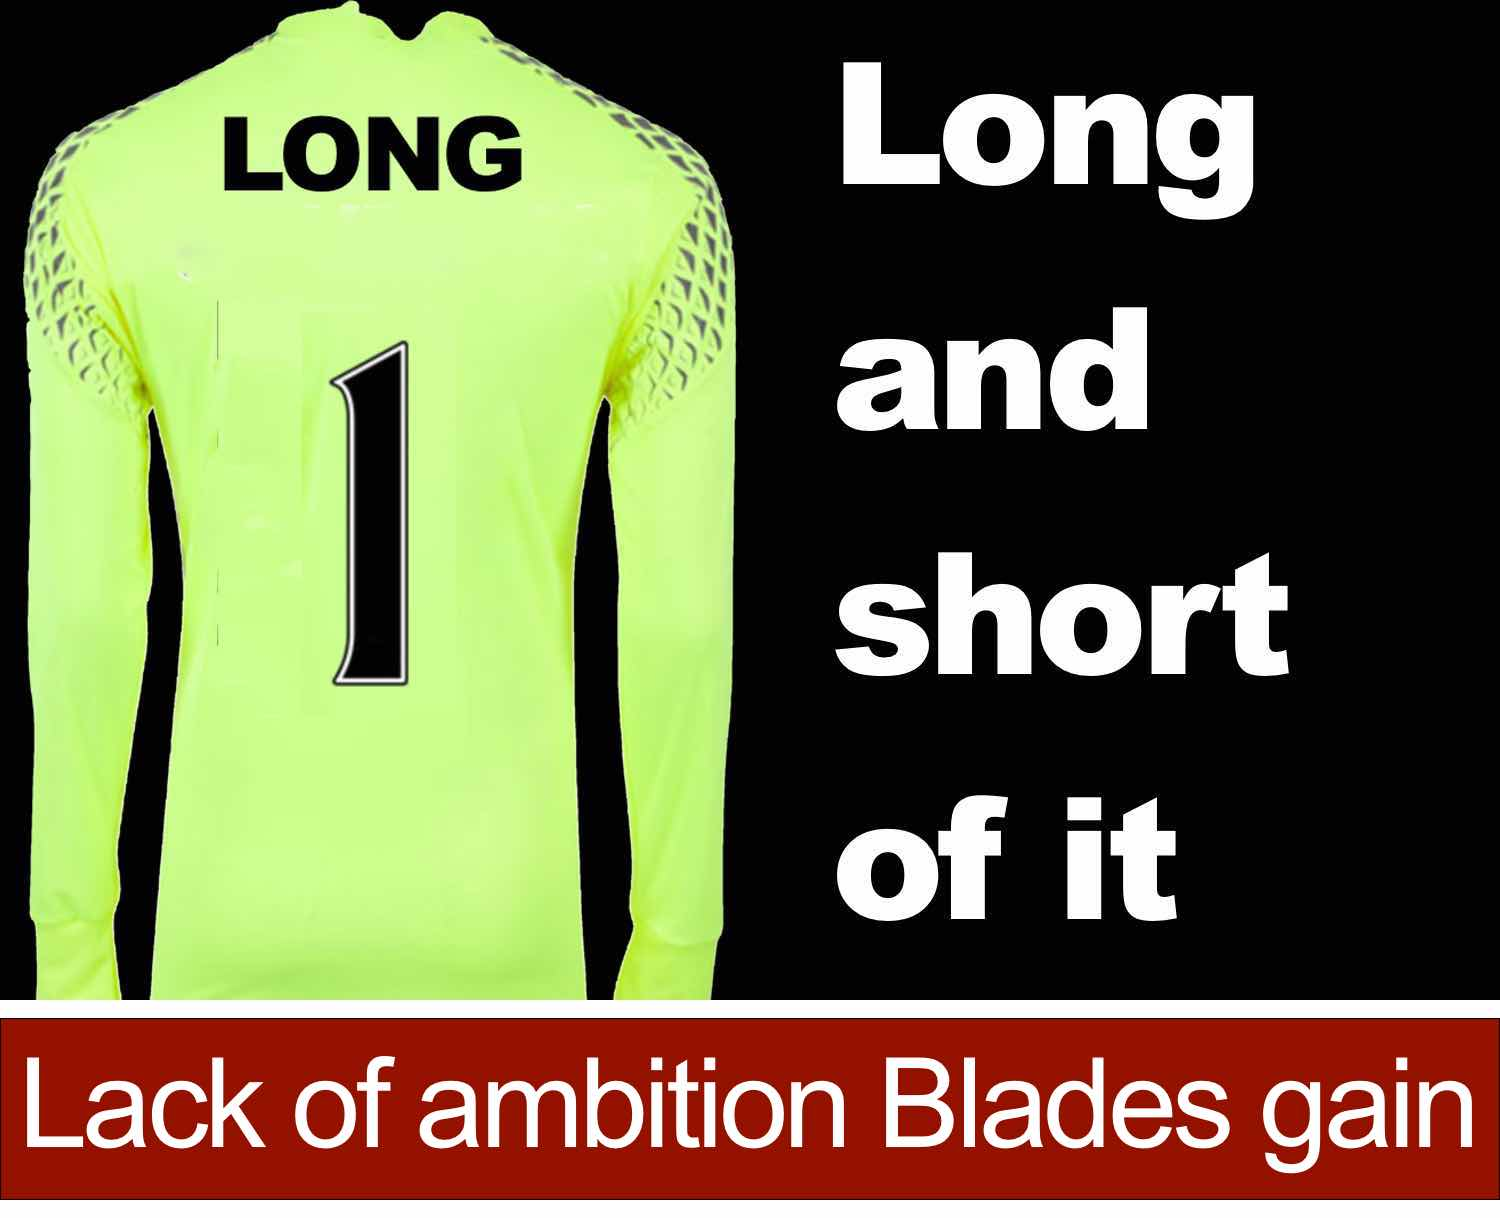 Sheffield United goalkeeper George Long's lack of ambition is Blades gain